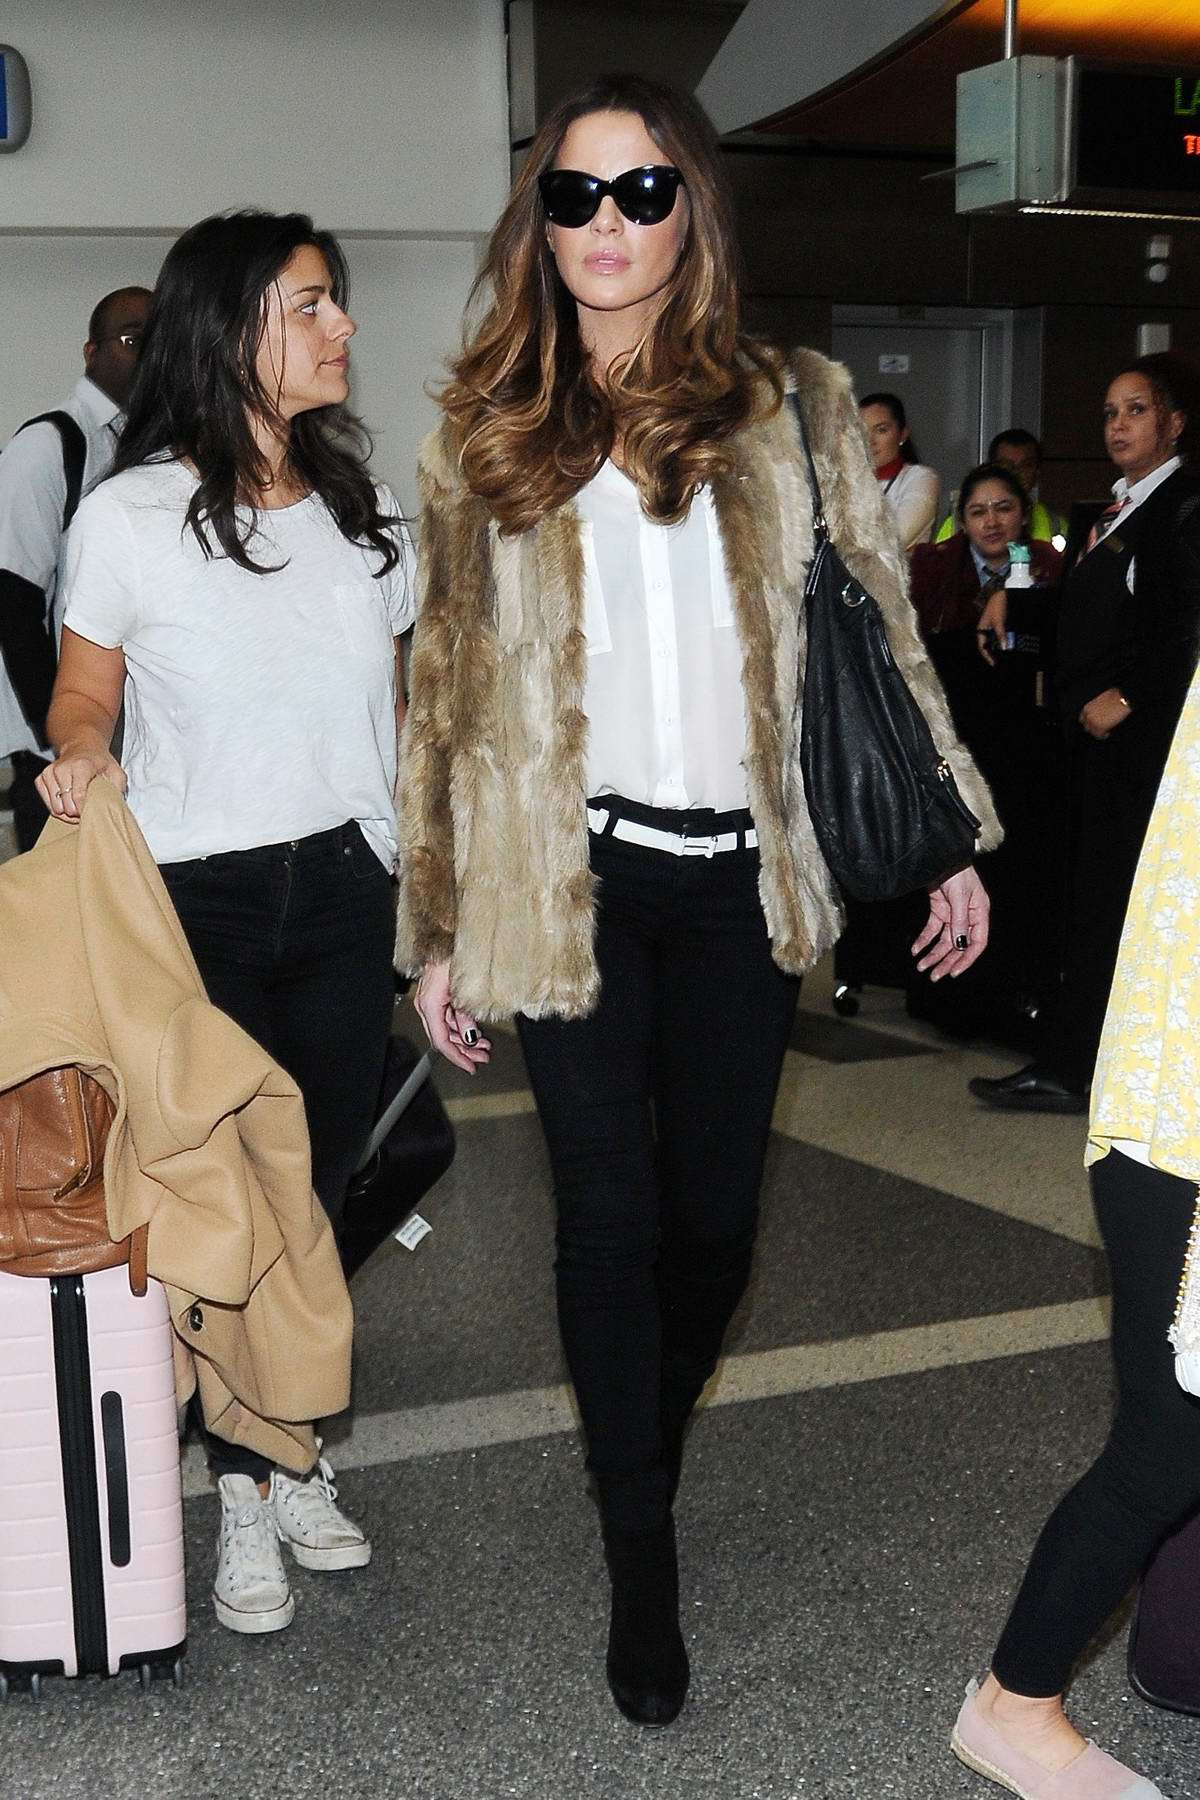 Kate Beckinsale looks stunning in a fur jacket, white shirt and black skinny jeans with matching heels as she arrives at LAX airport in Los Angeles